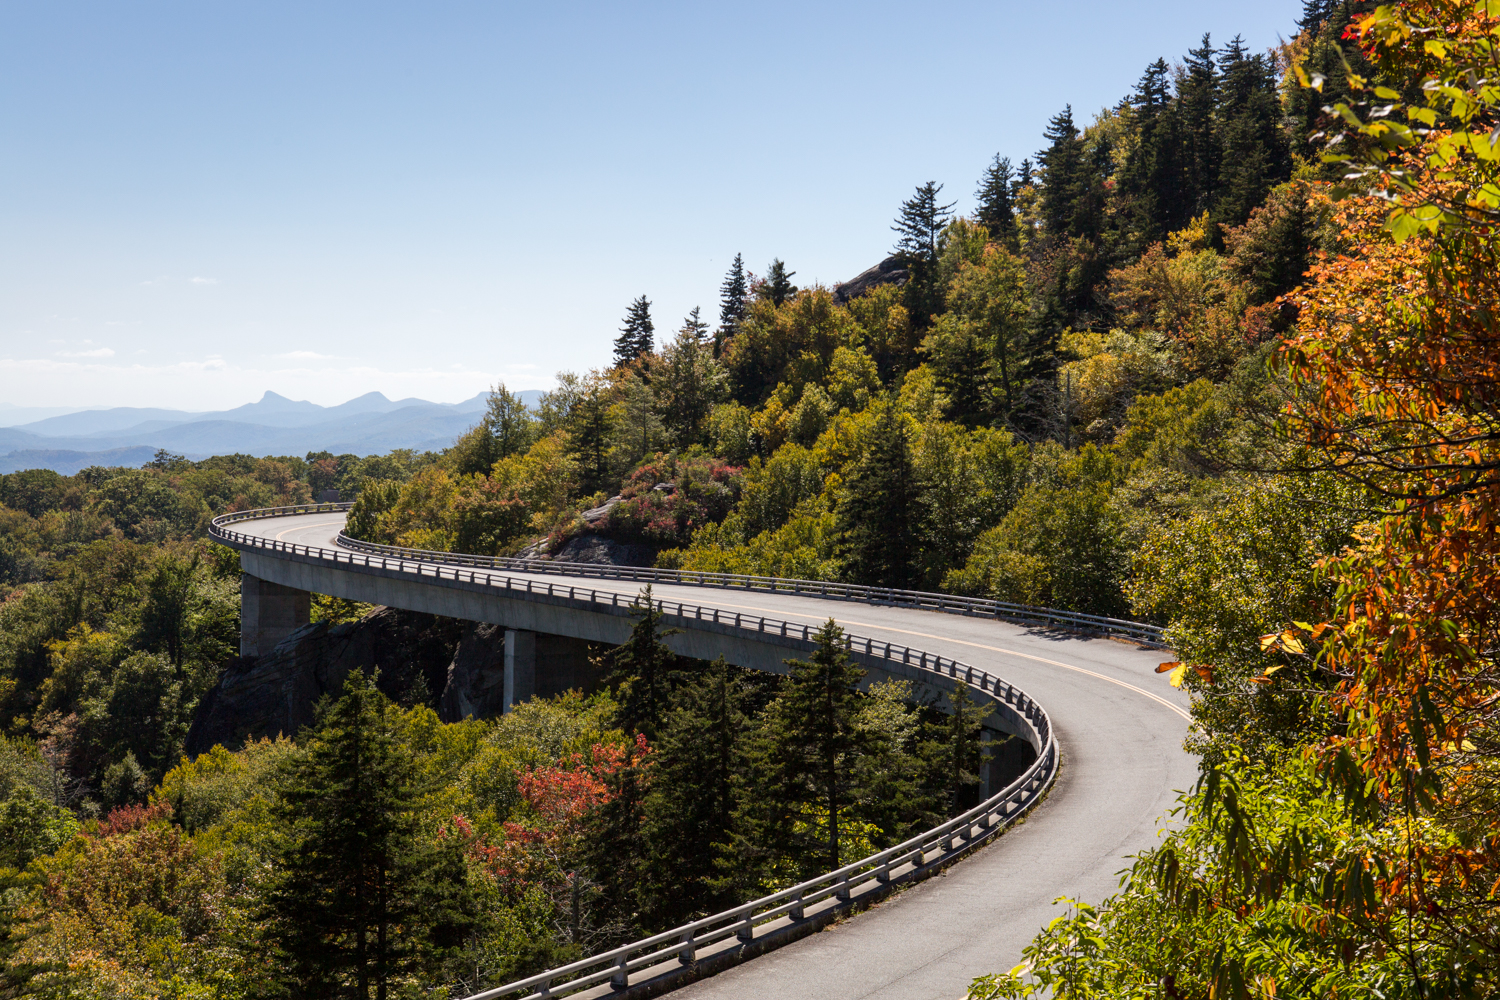 Landscape travel photography: Linn Cove Viaduct North Carolina Blue Ridge Parkway and Mountains